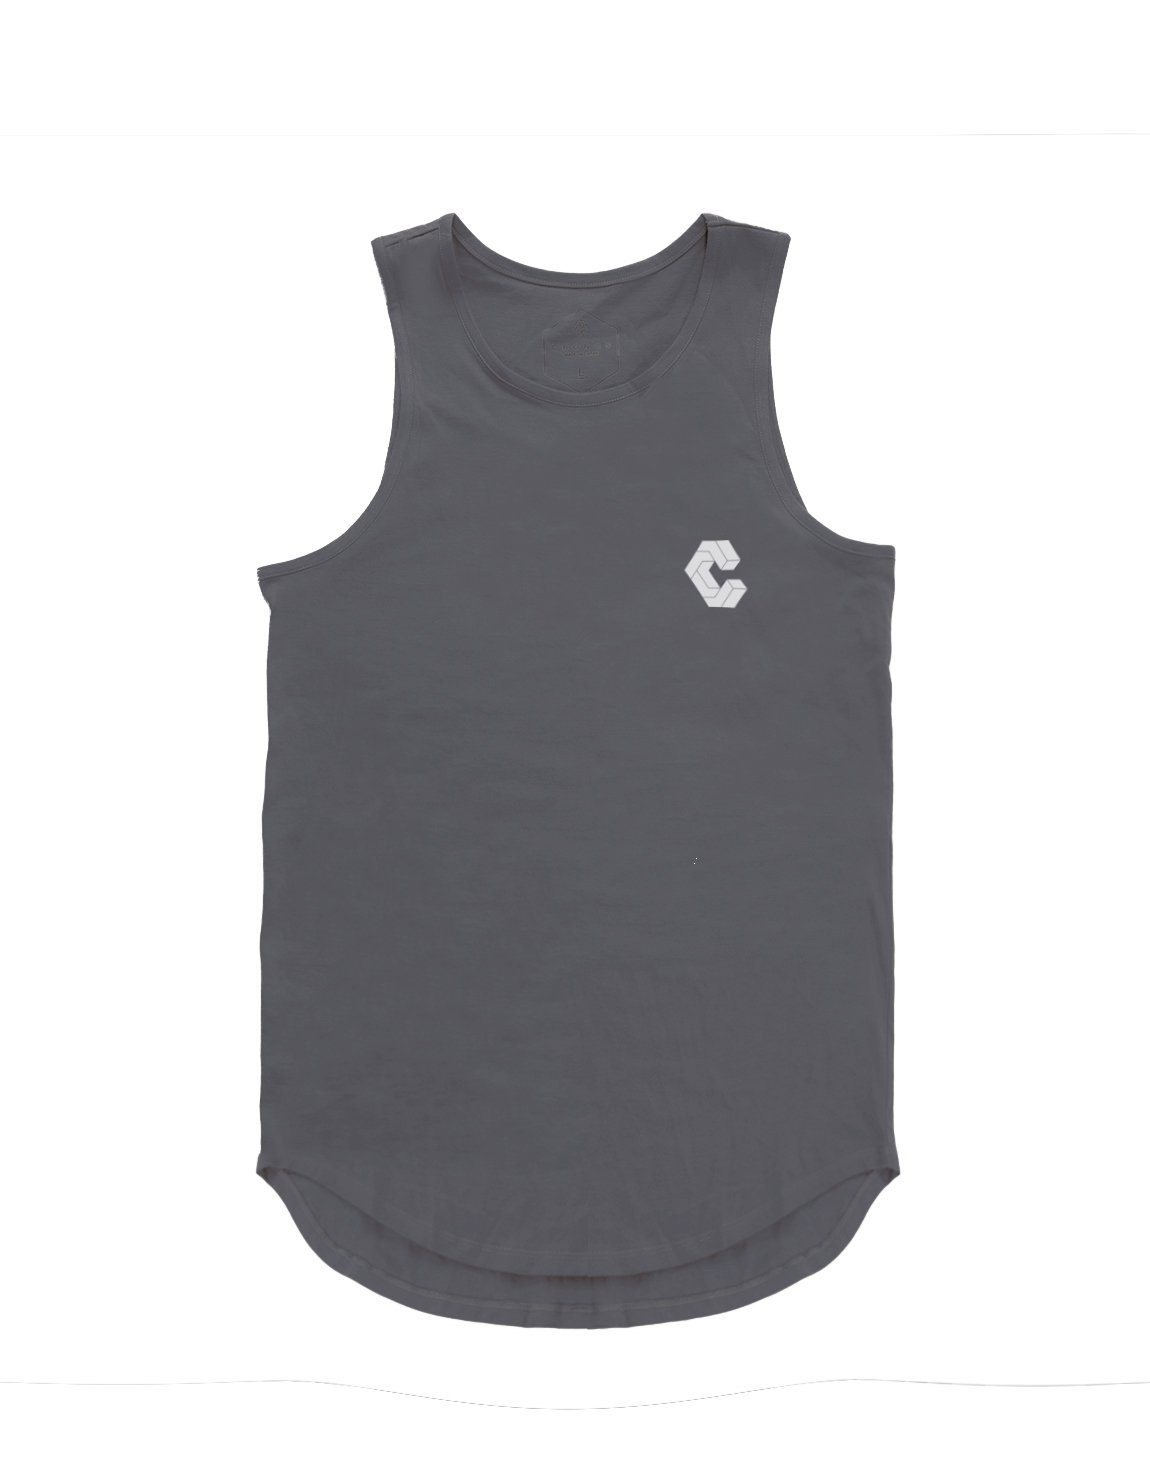 <img class='new_mark_img1' src='https://img.shop-pro.jp/img/new/icons1.gif' style='border:none;display:inline;margin:0px;padding:0px;width:auto;' />CRONOS BACK BOX LOGO TANK TOP 【GRAY】